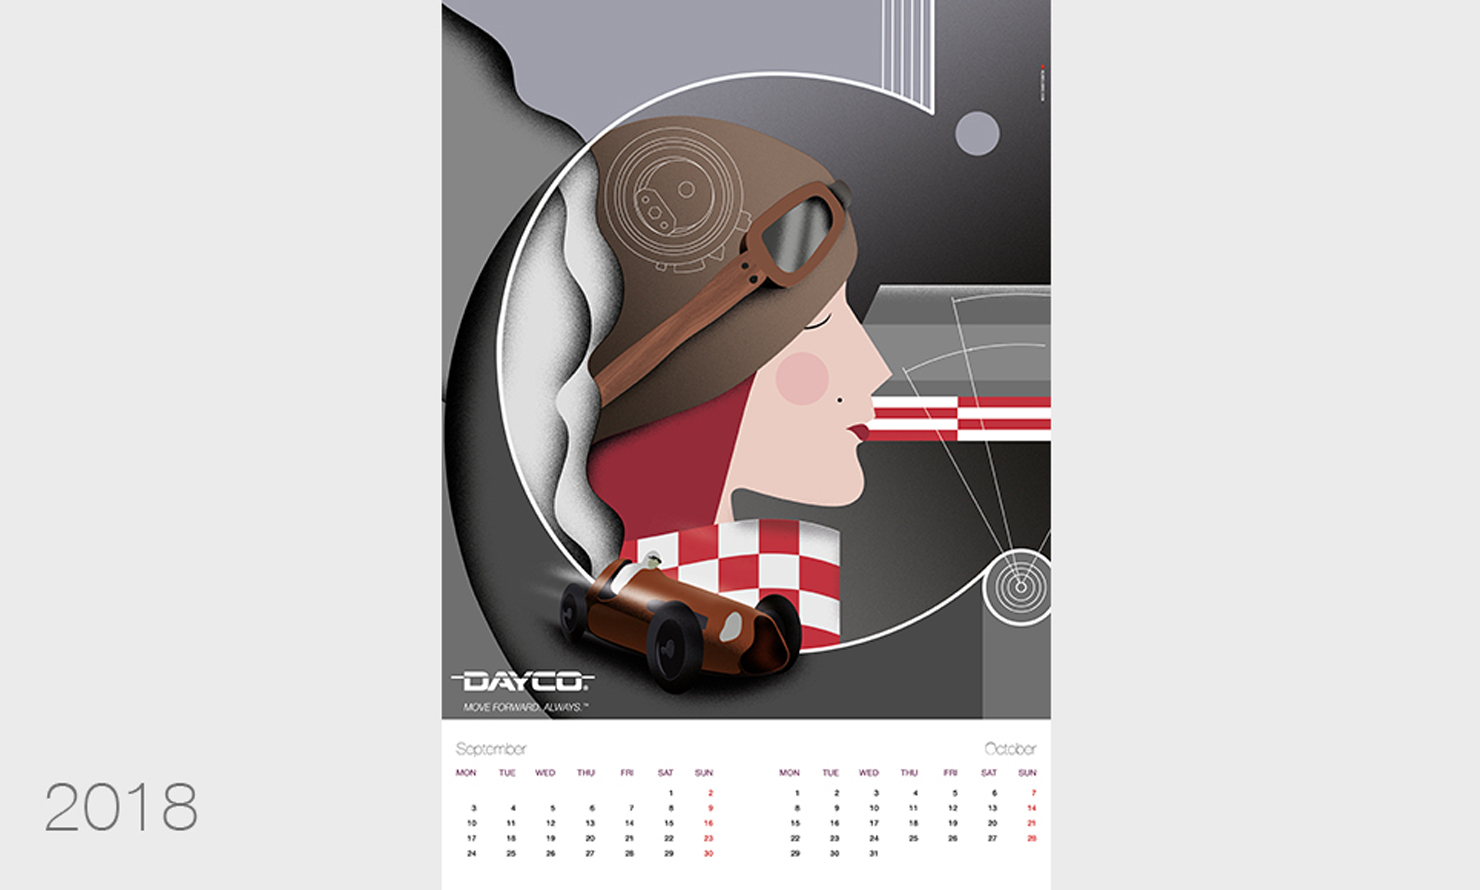 https://kubelibre.com/uploads/Slider-work-tutti-clienti/dayco-calendario-2018-5.jpg